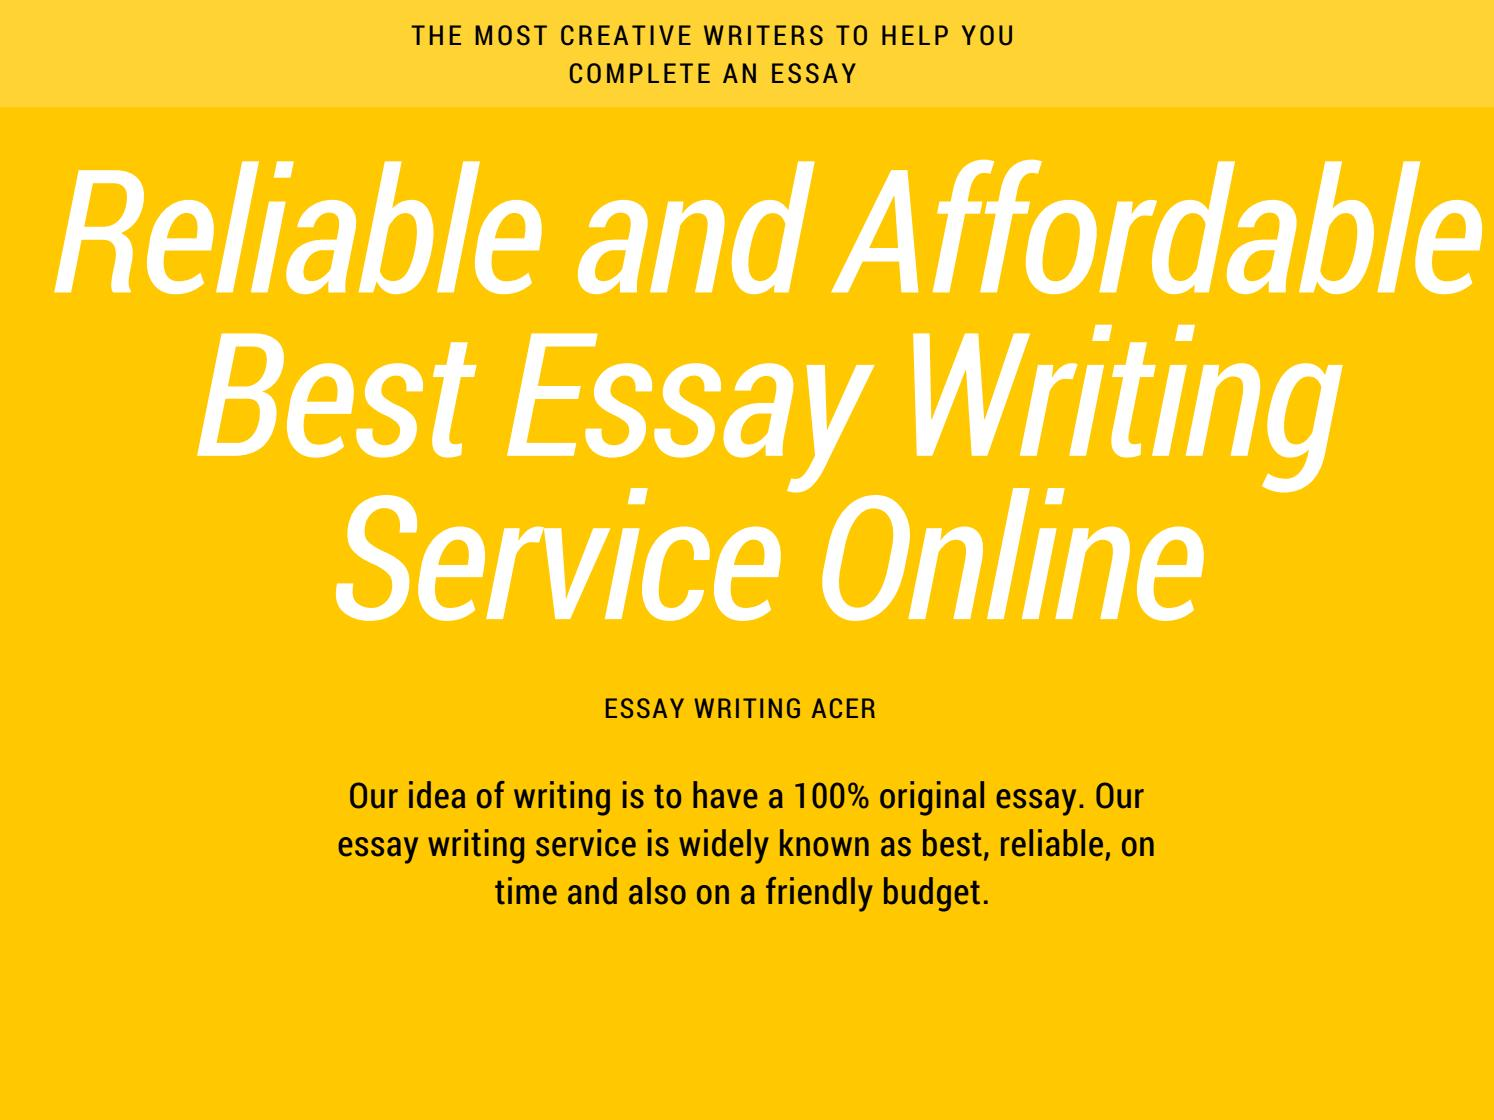 The best essay writing services degree